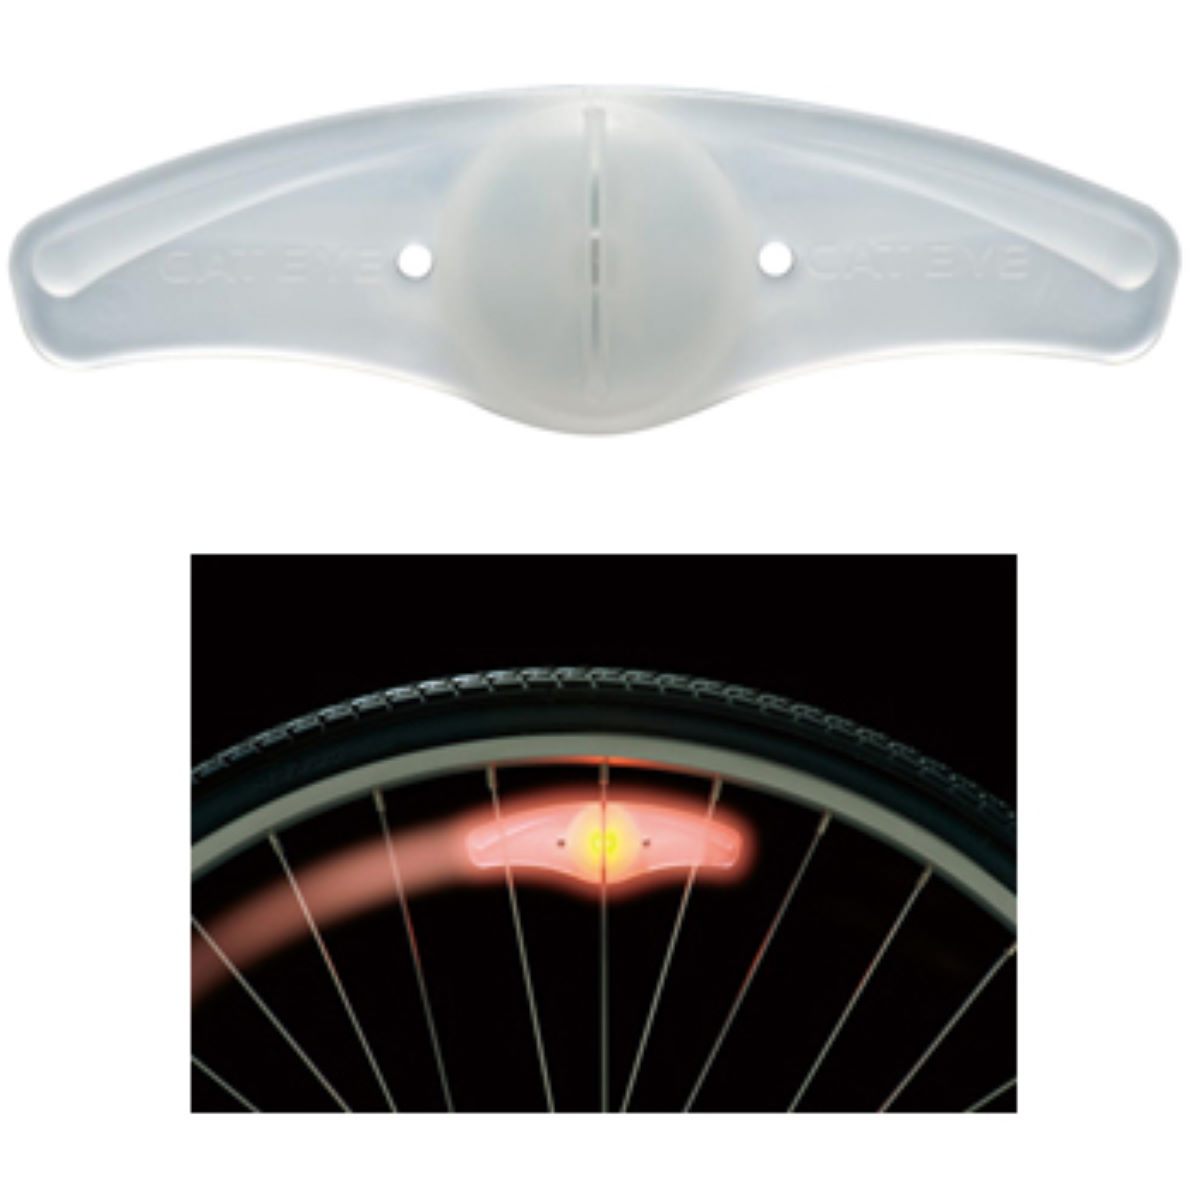 Cateye SL120 Orbit Spoke Front and Rear Light Set